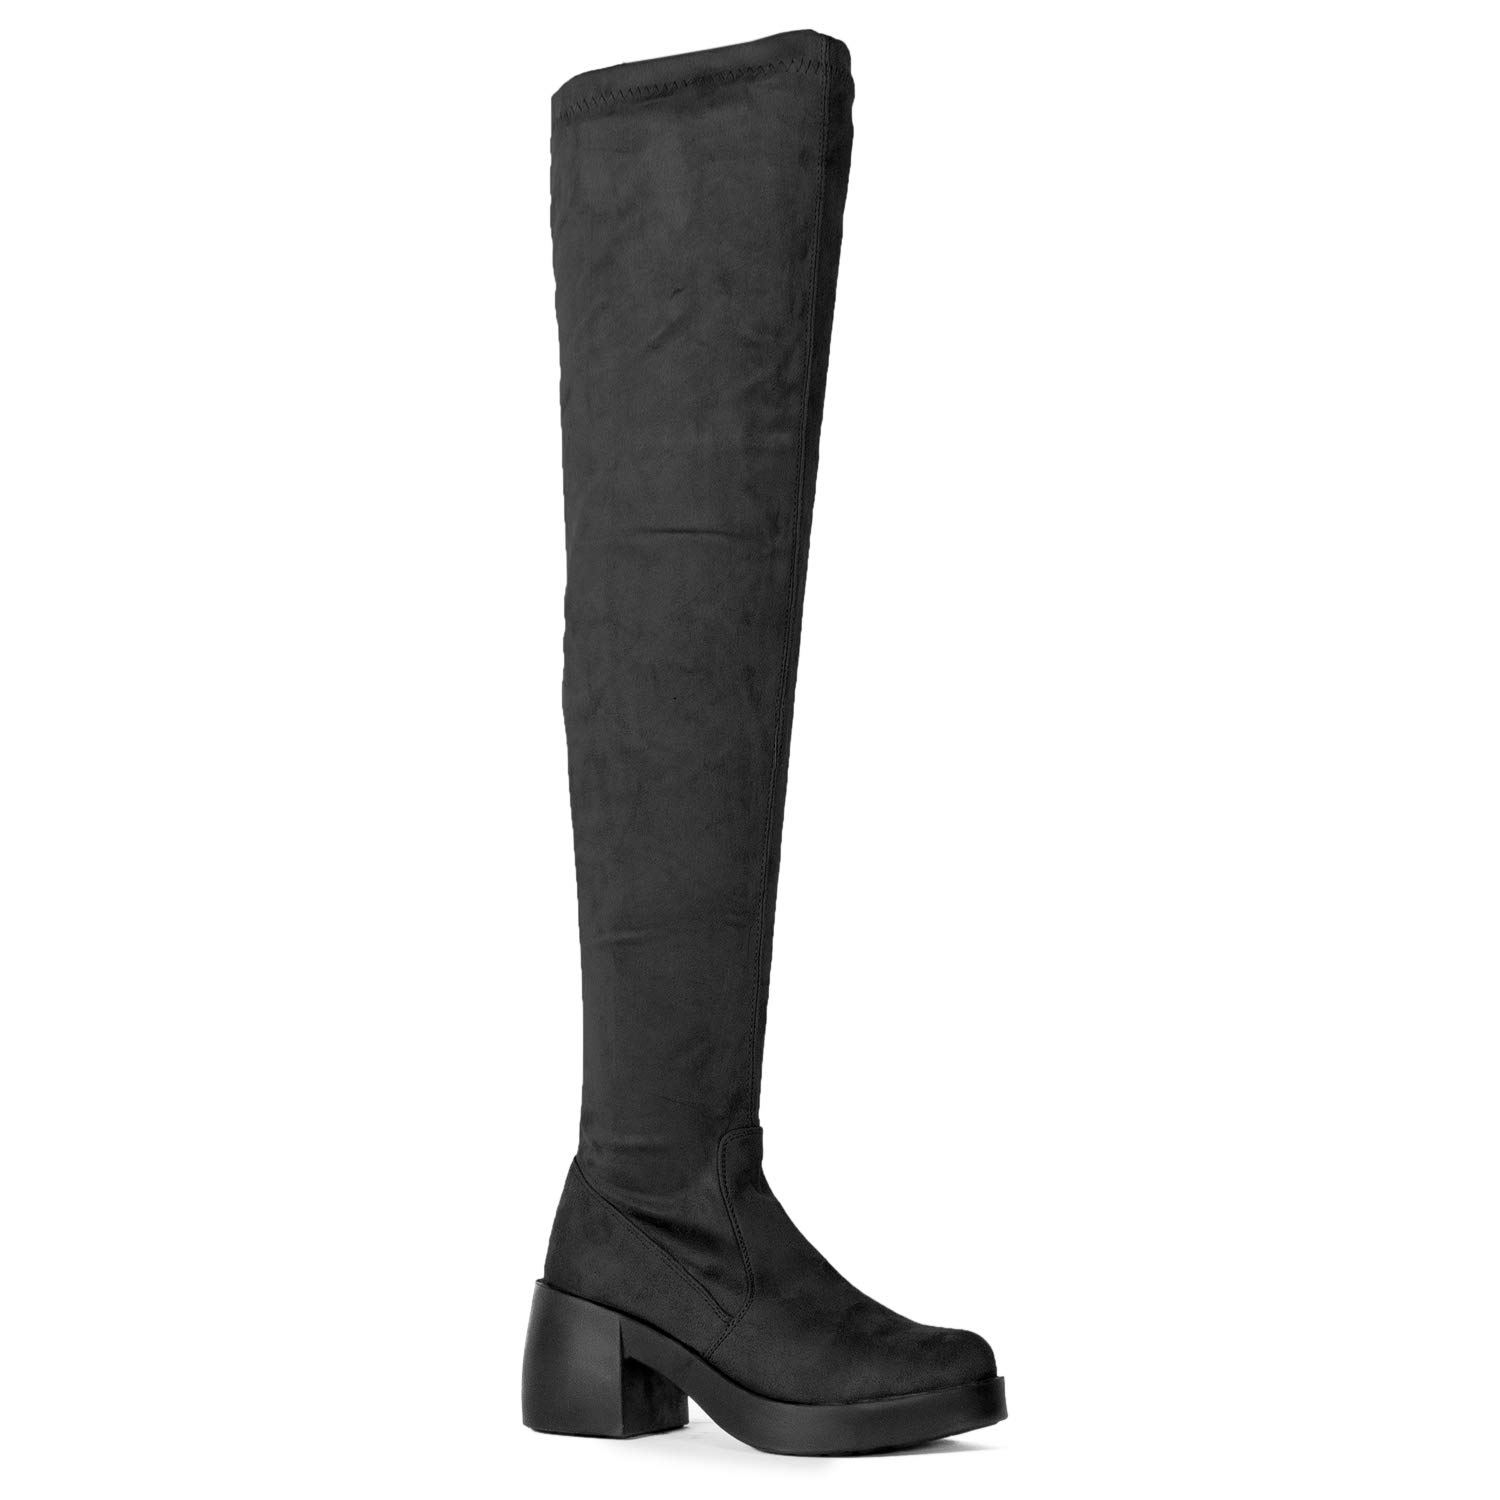 RF ROOM OF FASHION Opus-22 Women's Soft Faux Suede Fitted Platform Chunky Heel Over The Knee Boots Black (8.5)